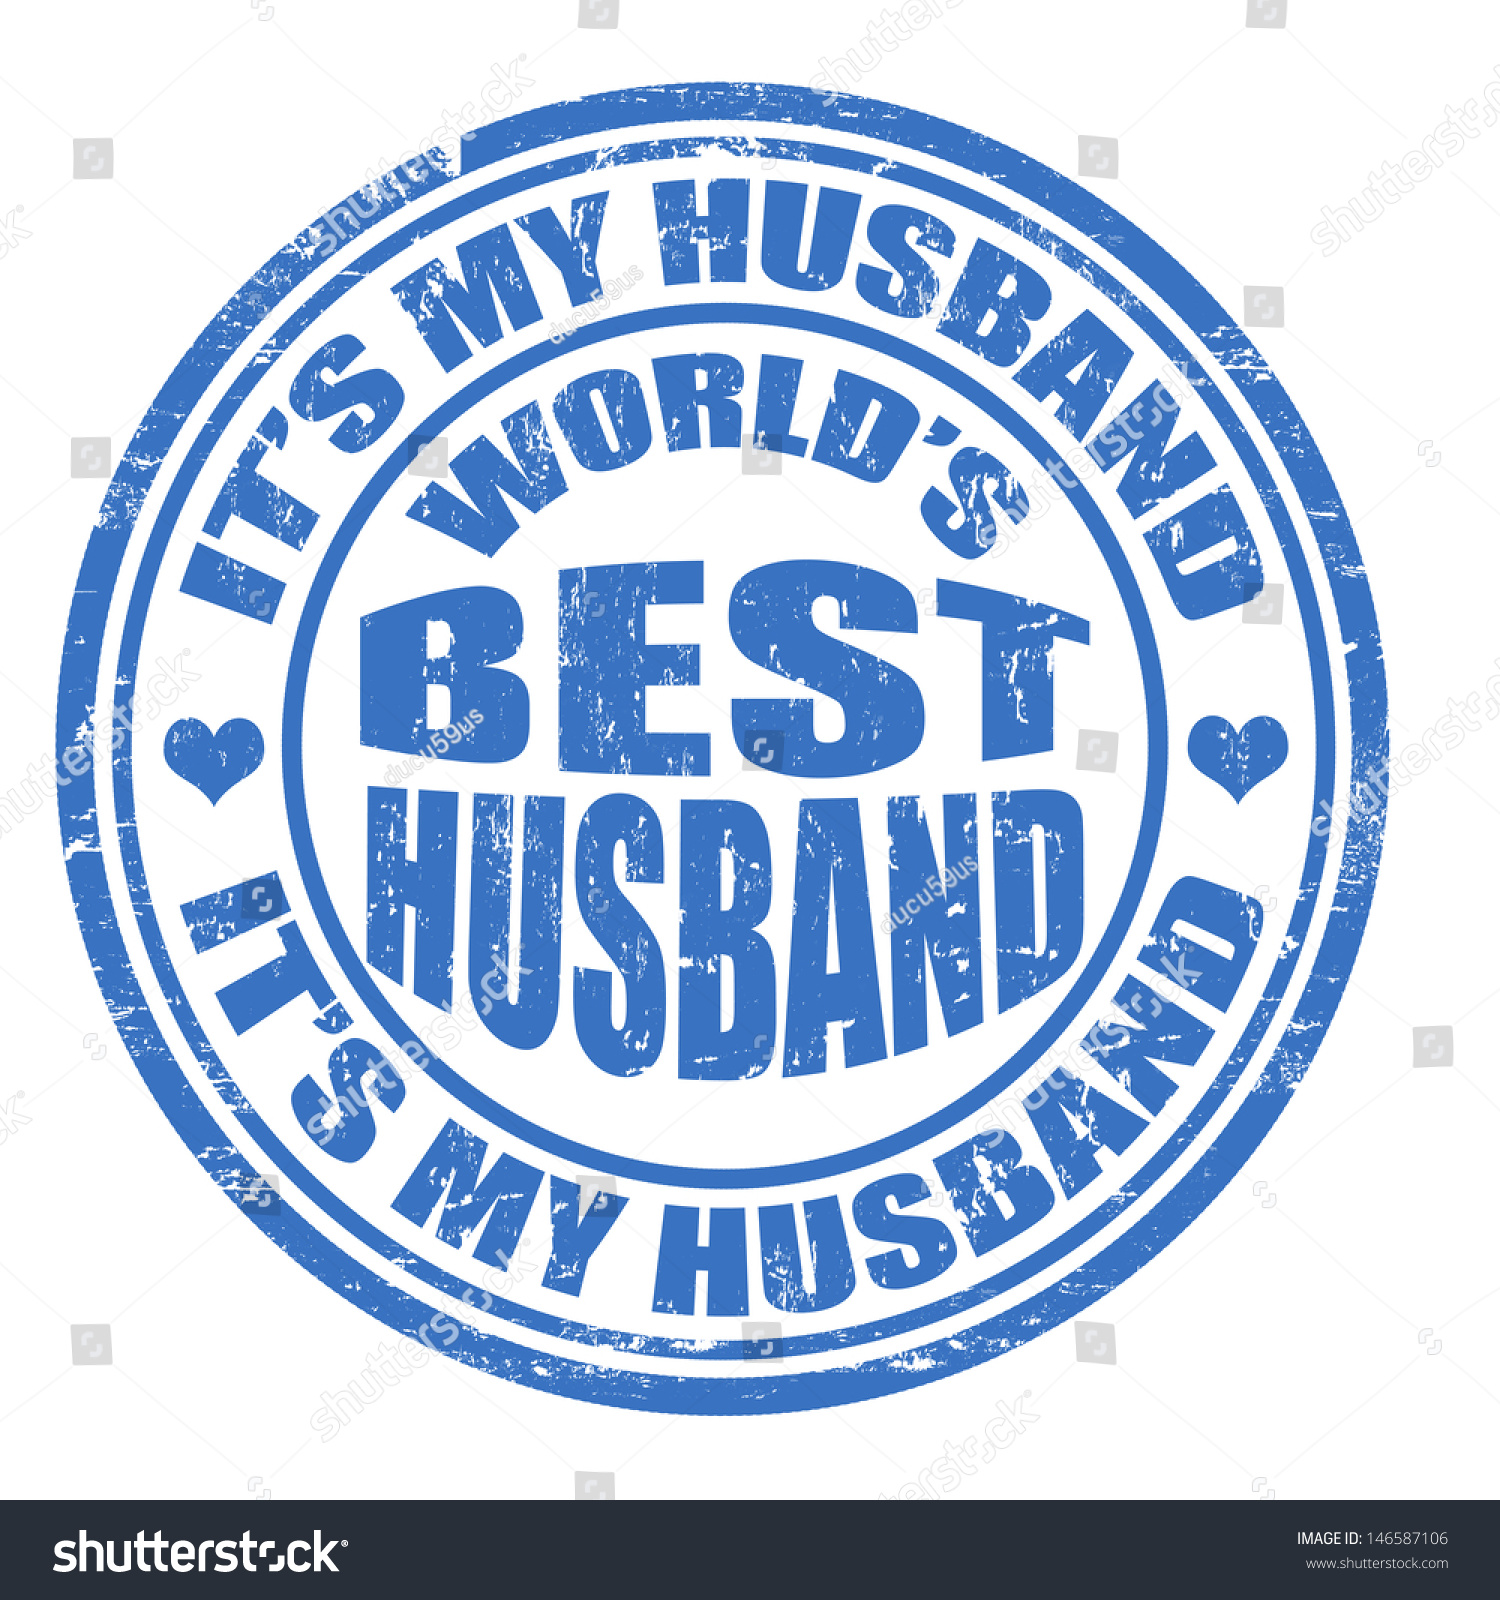 Grunge Worlds Best Husband Rubber Stamp Stock Vector Royalty Free